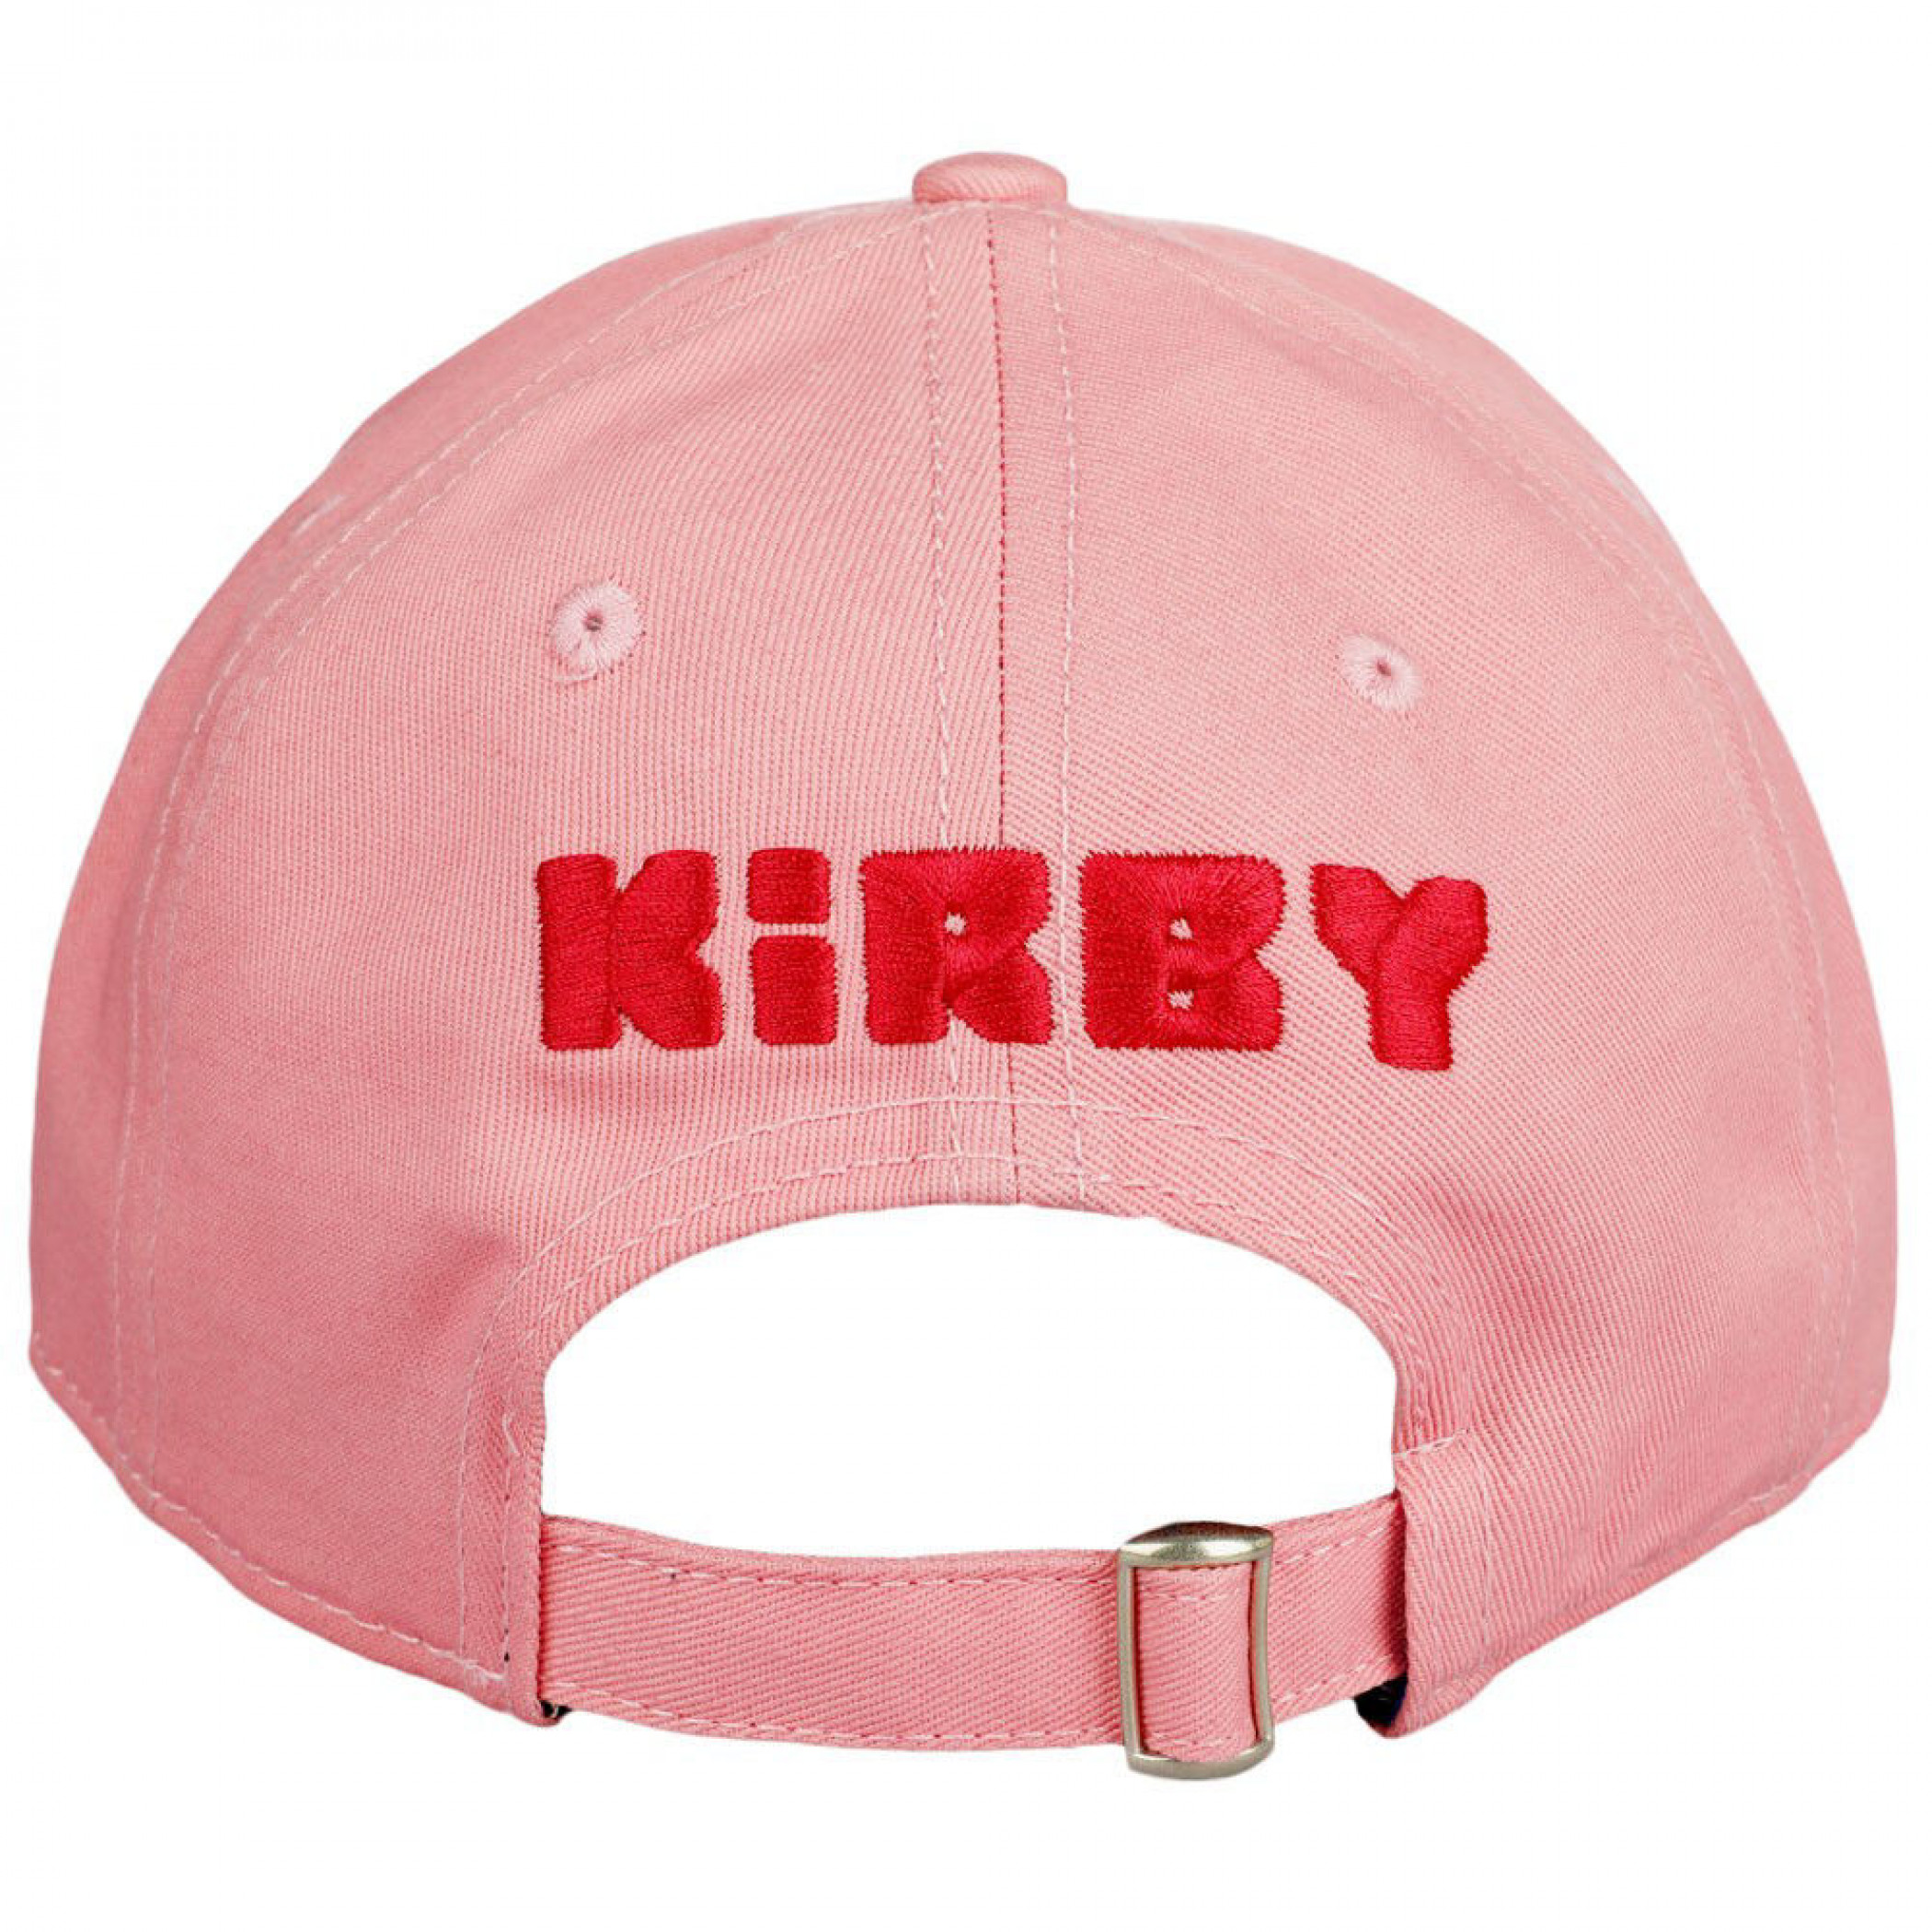 Kirby Big Face Embroidered Pre-Curved Snapback Hat